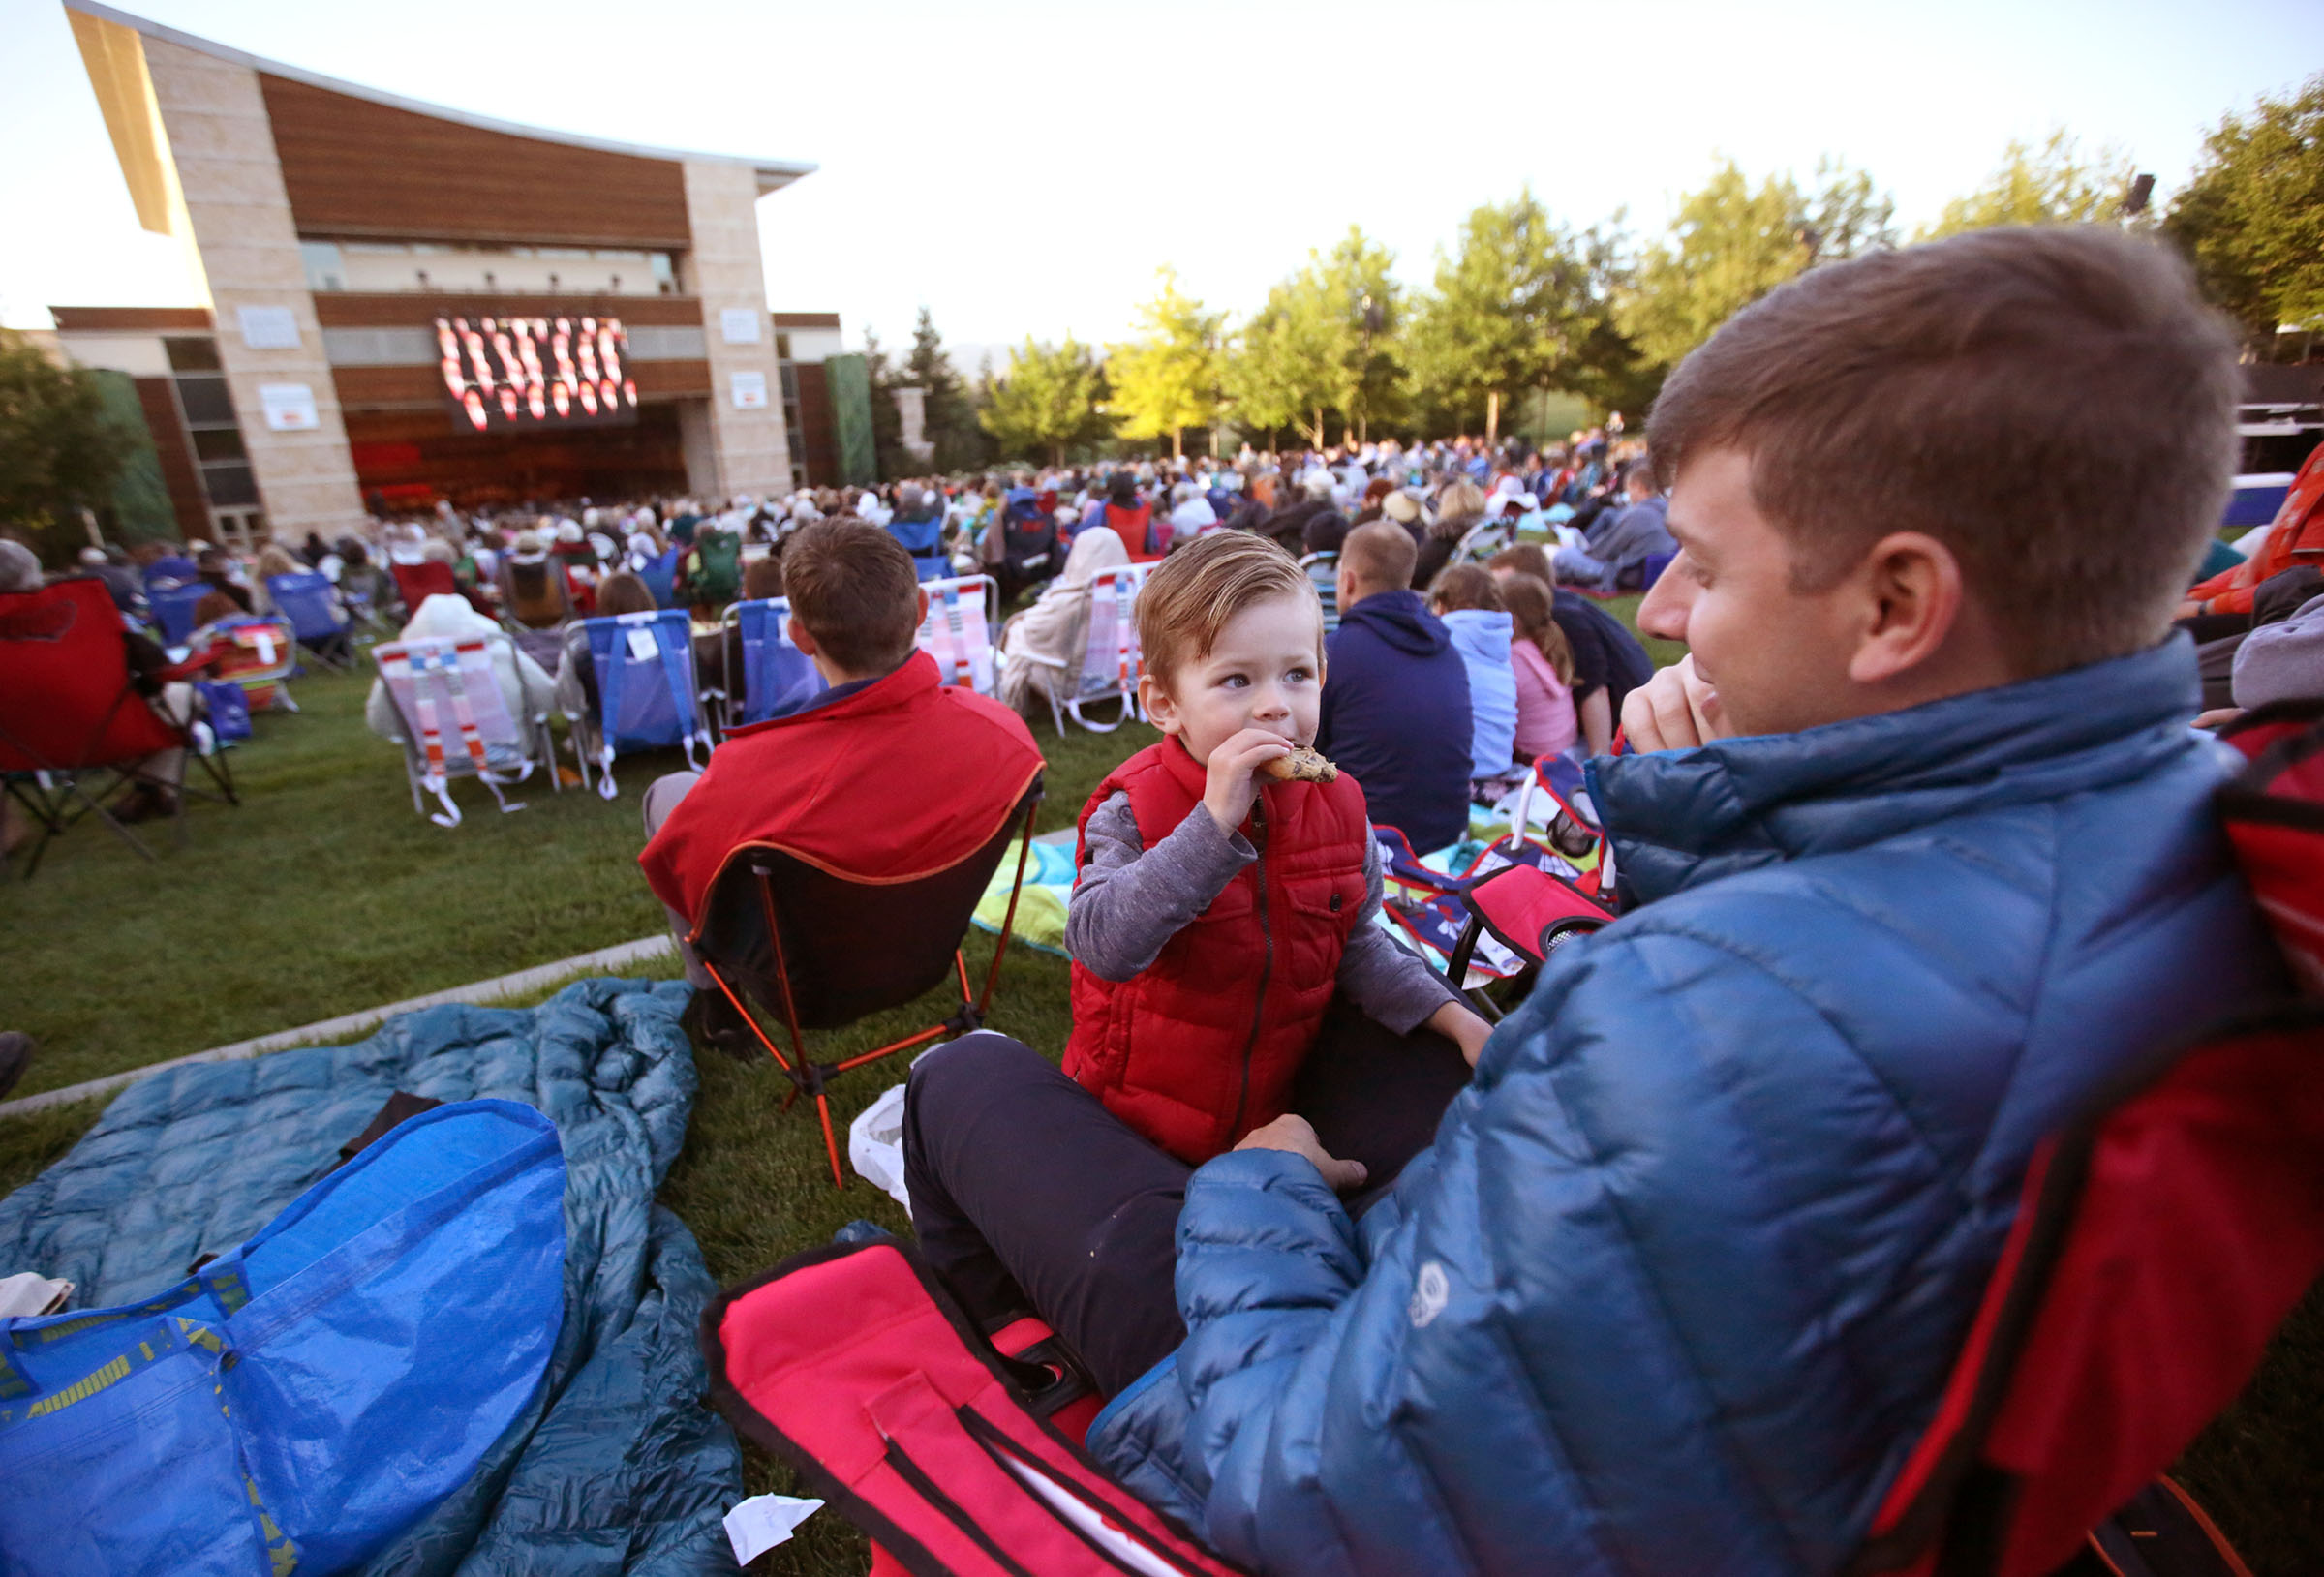 Neil Gruwell eats a cookie with his father Paul Gruwell while listening to the Mormon Tabernacle Choir and Orchestra at Temple Square concert at the Green Music Center in Rohnert Park, California, on Wednesday, June 27, 2018. On Monday, April 27, the Choir and Orchestra announced their 2020 Heritage Tour scheduled for several European nations will be postponed until 2021 due to the COVID-19 pandemic.